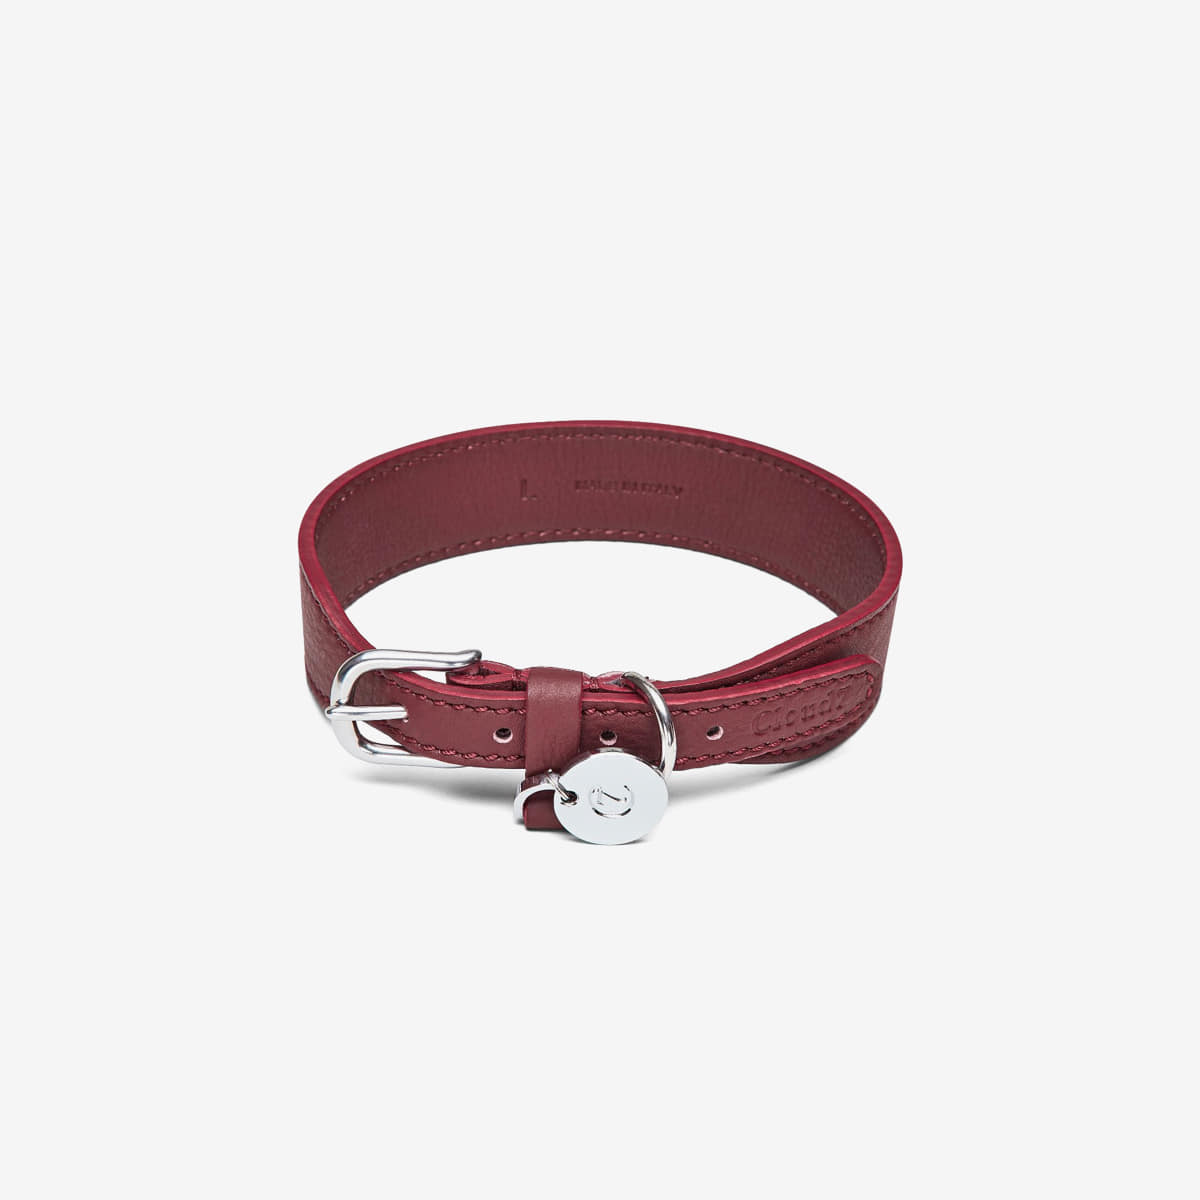 DOG COLLAR VONDELPARK BURGUNDY